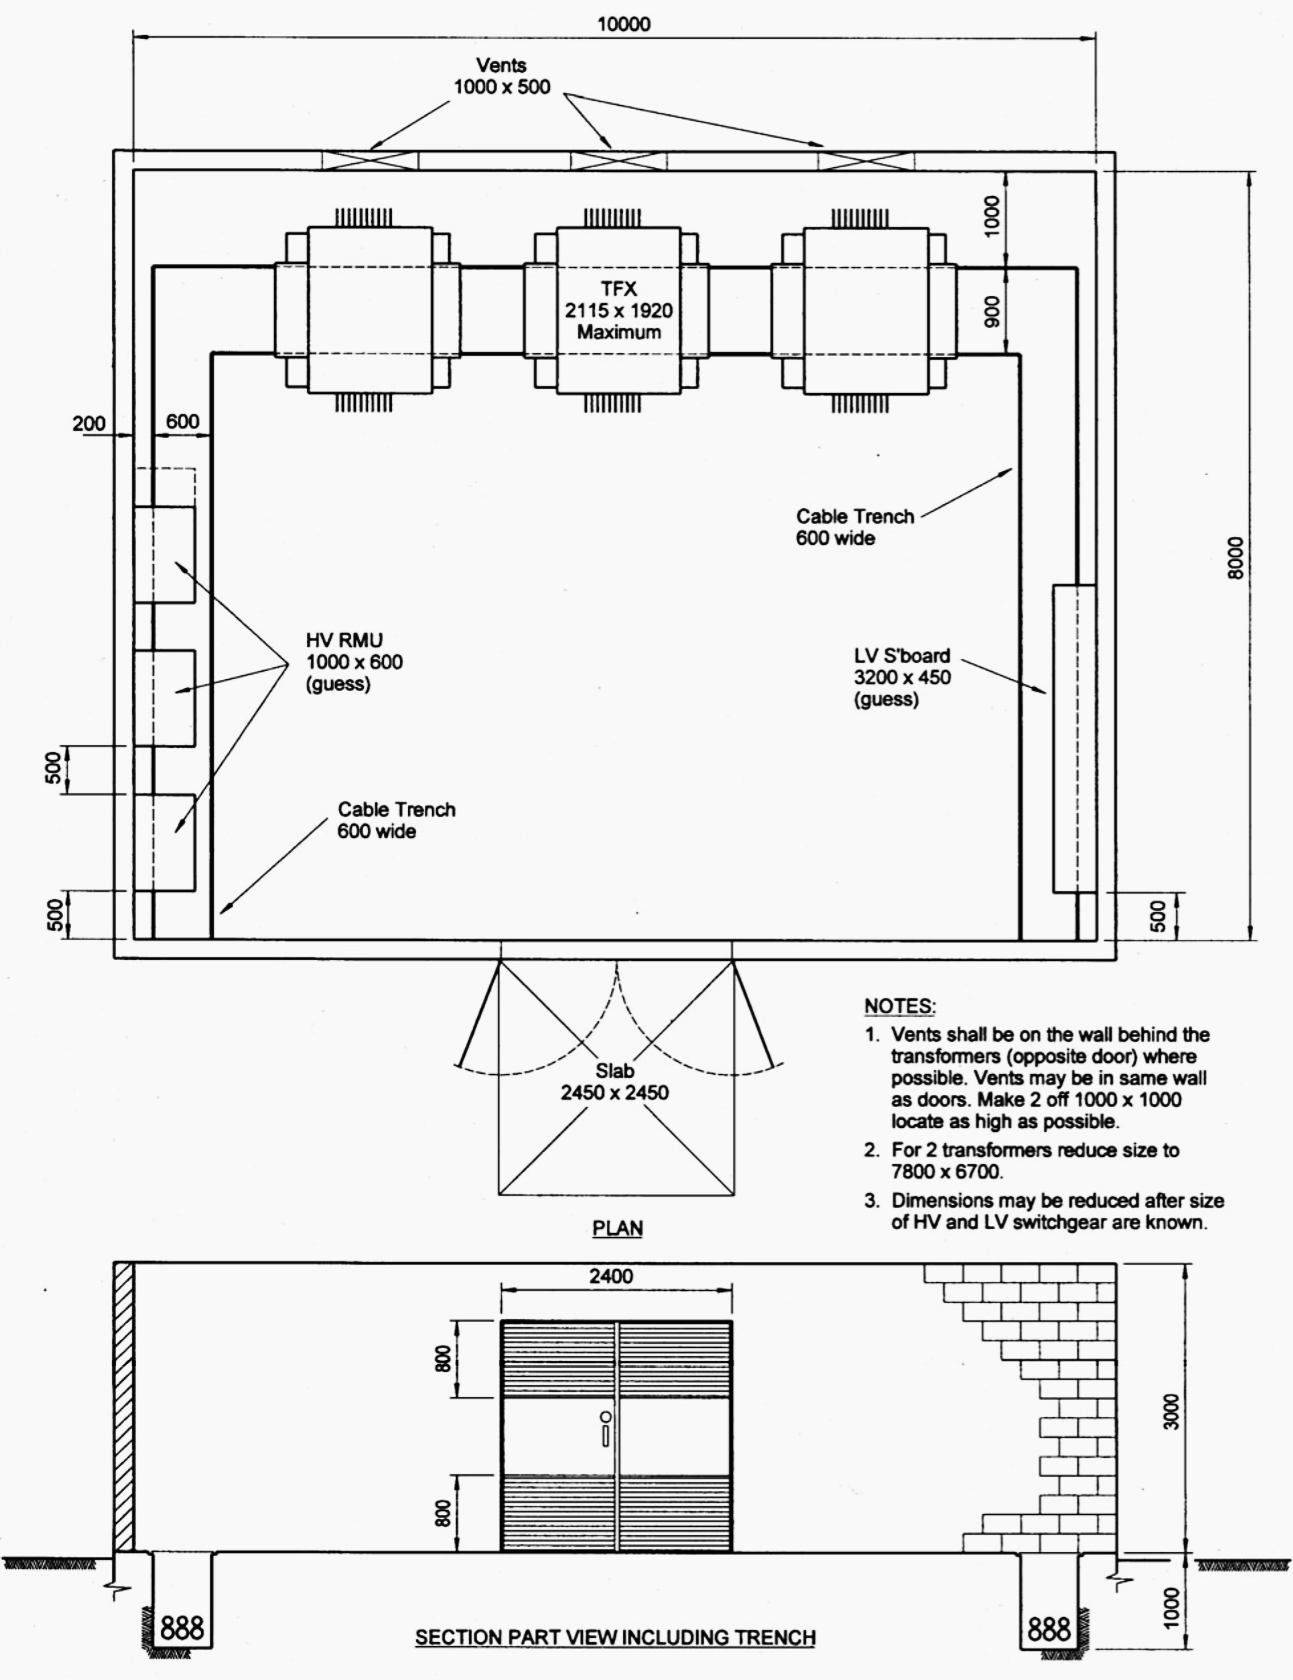 Indoor Distribution Substation Layout With 3 Transformers